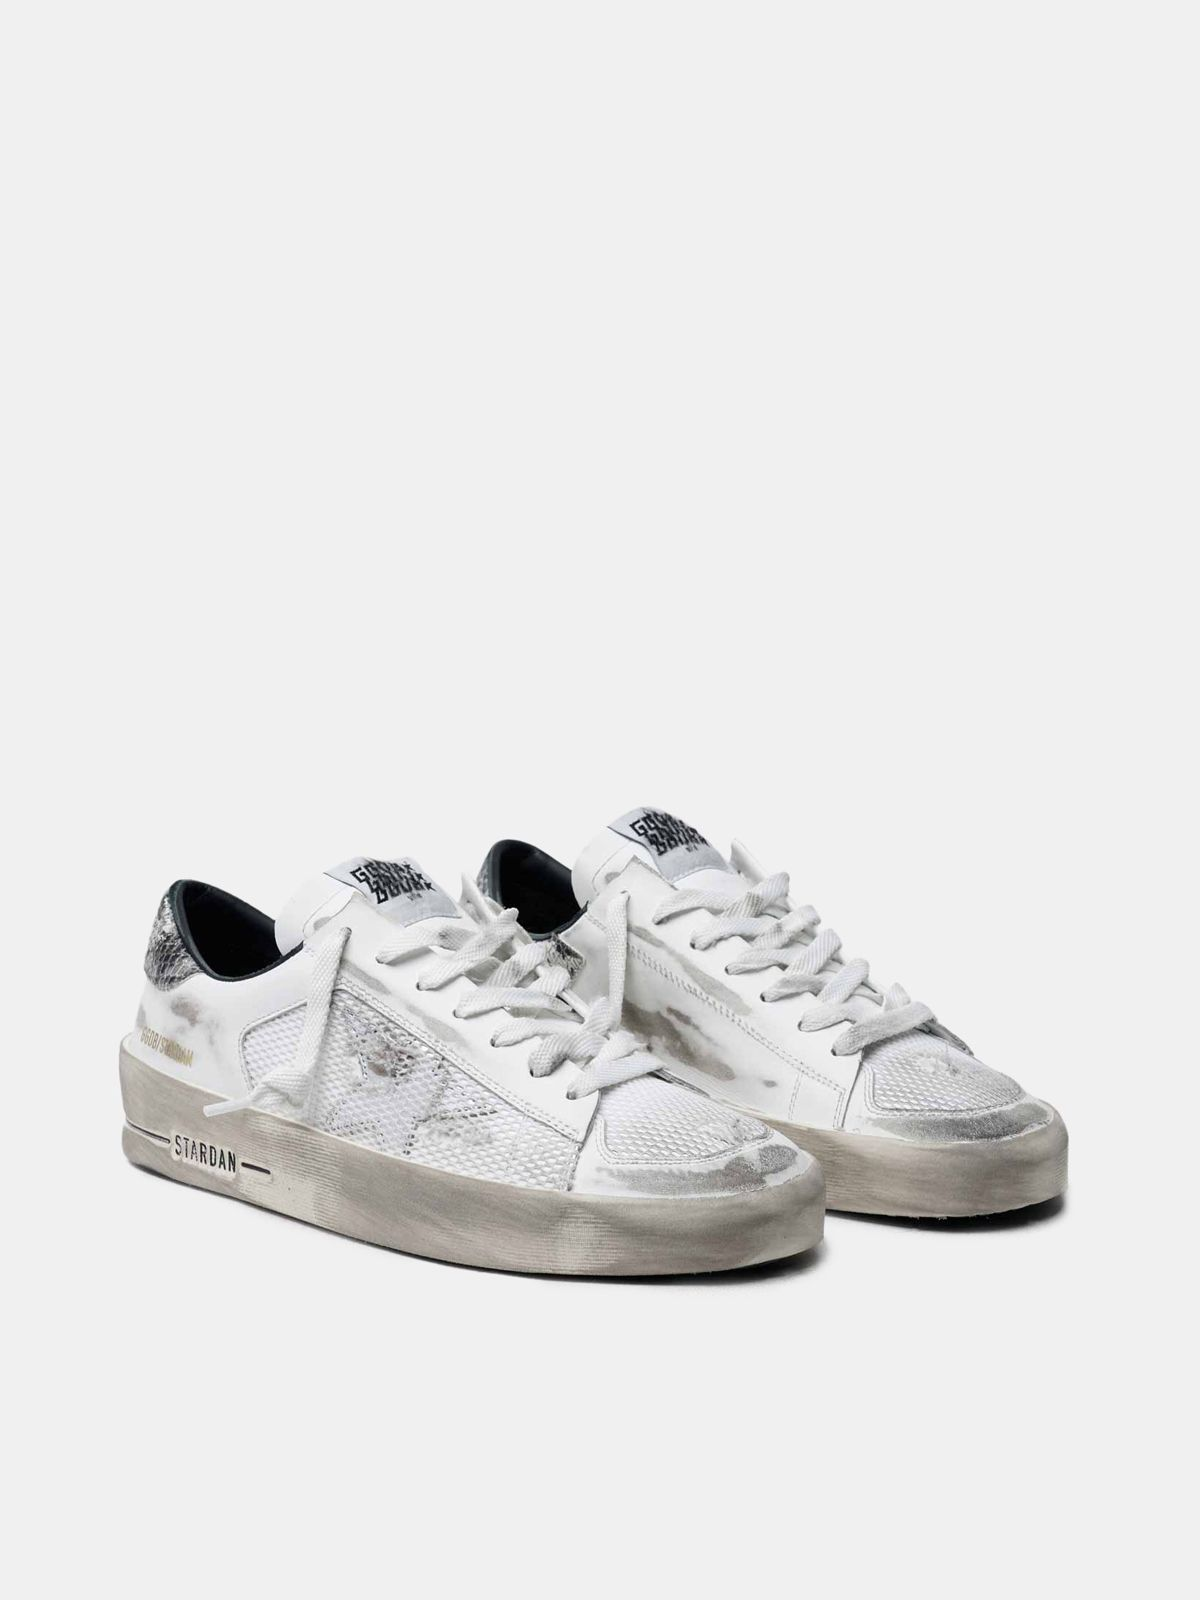 Golden Goose - White Stardan sneakers with python heel tab in